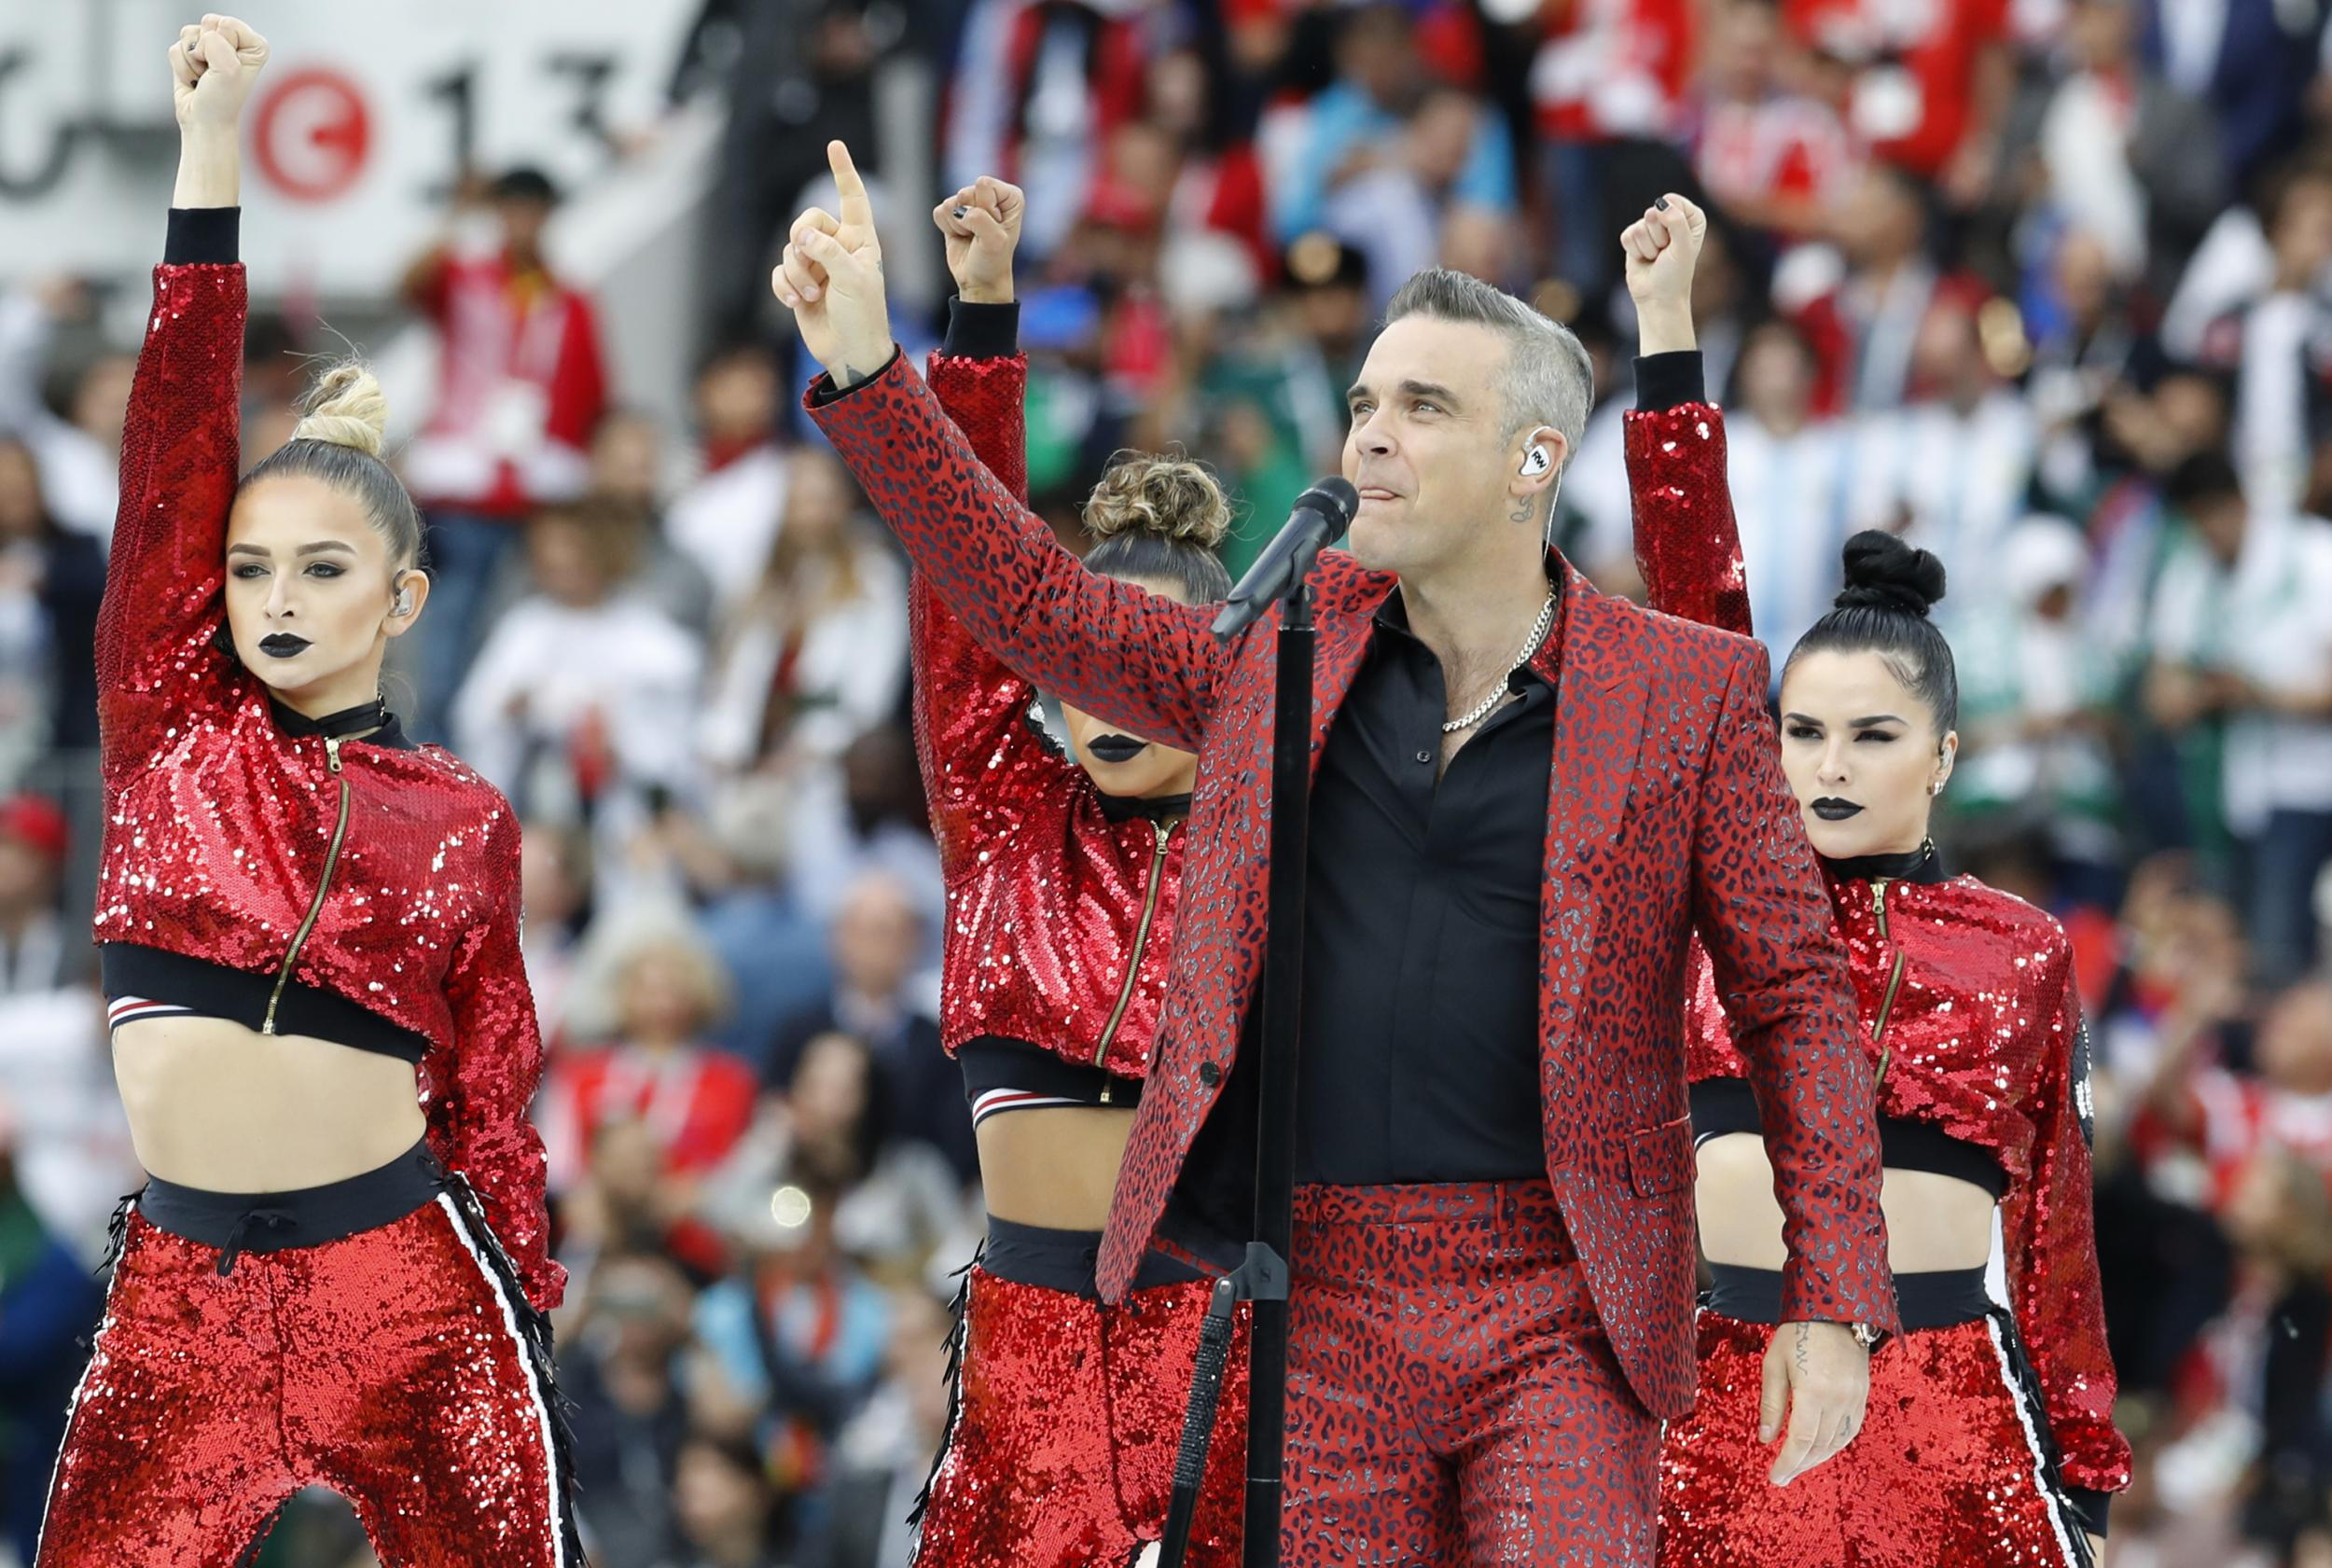 World Cup 2018: Robbie Williams may have broken Russian law by kicking off tournament by giving middle finger to camera